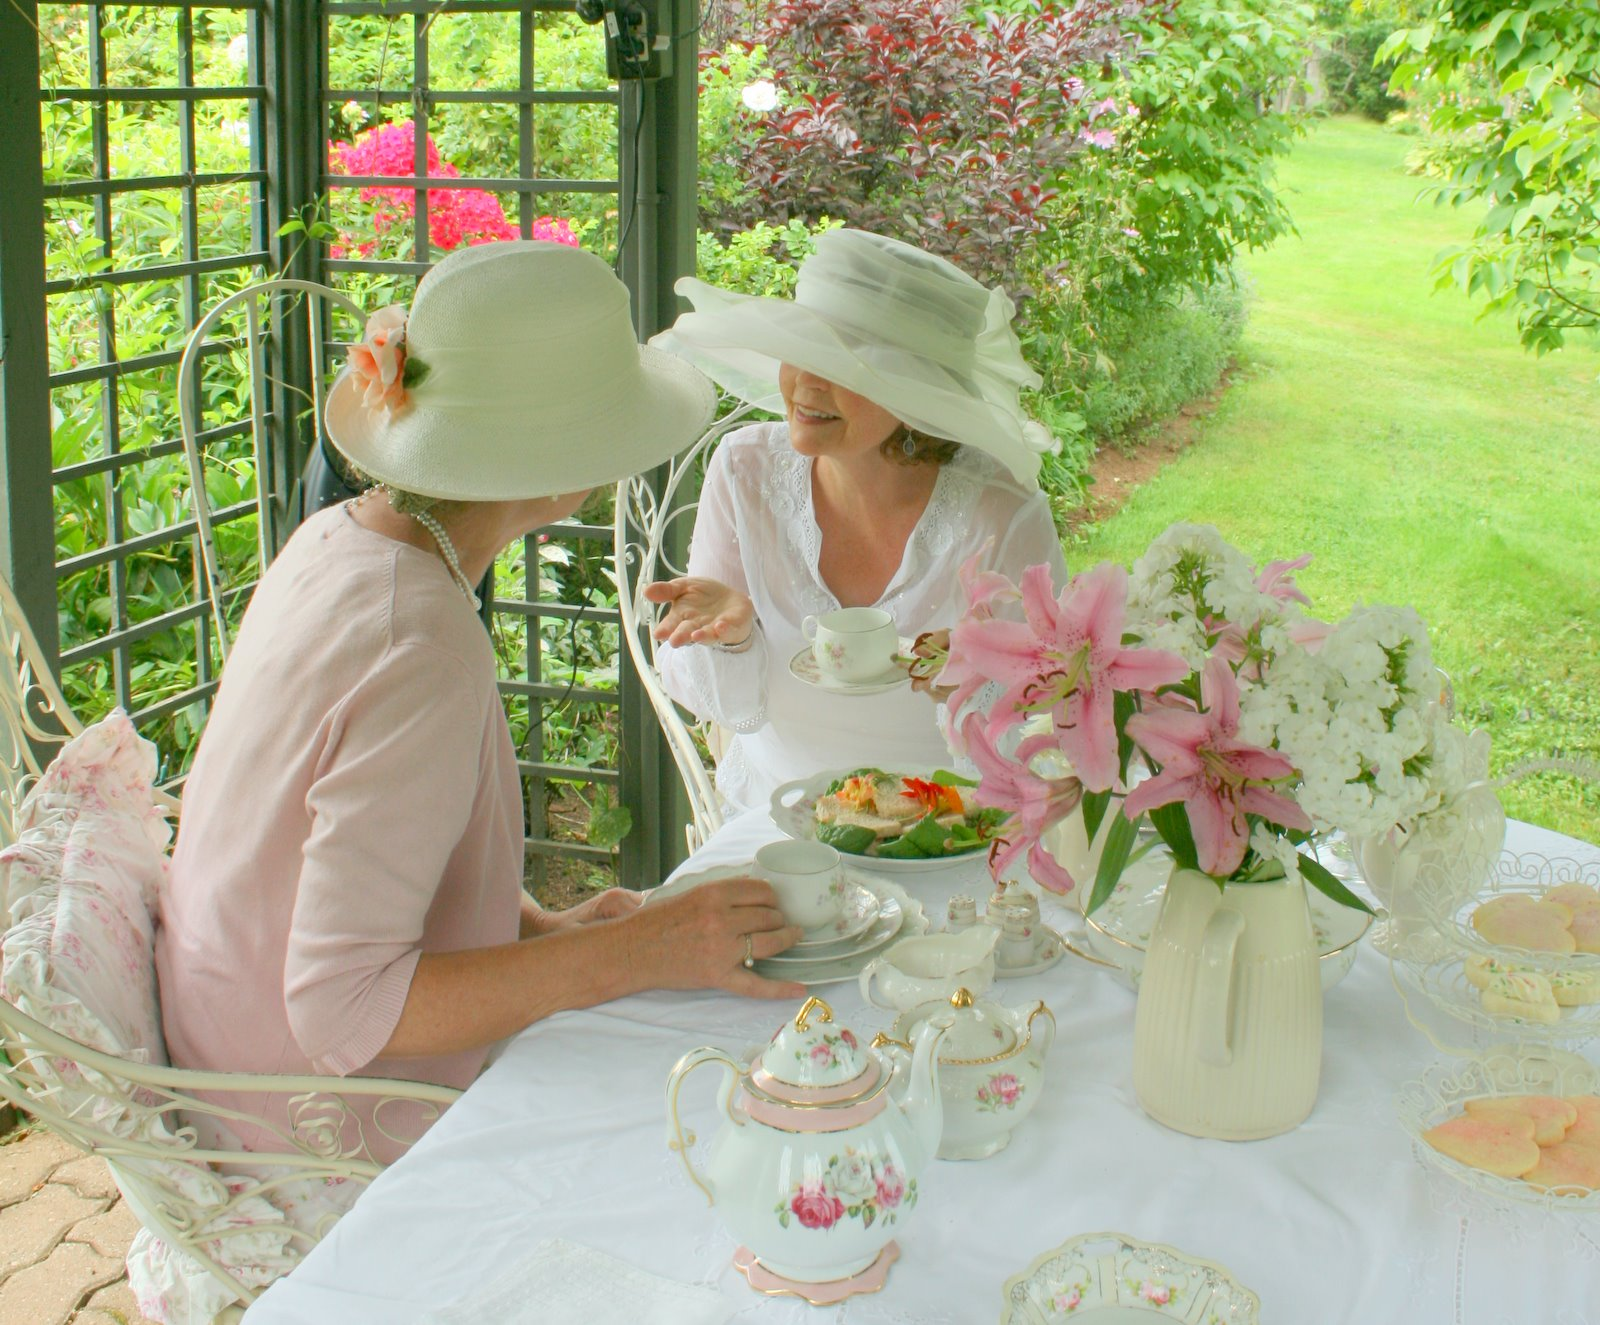 Aiken House & Gardens: A Summer Afternoon Garden Tea